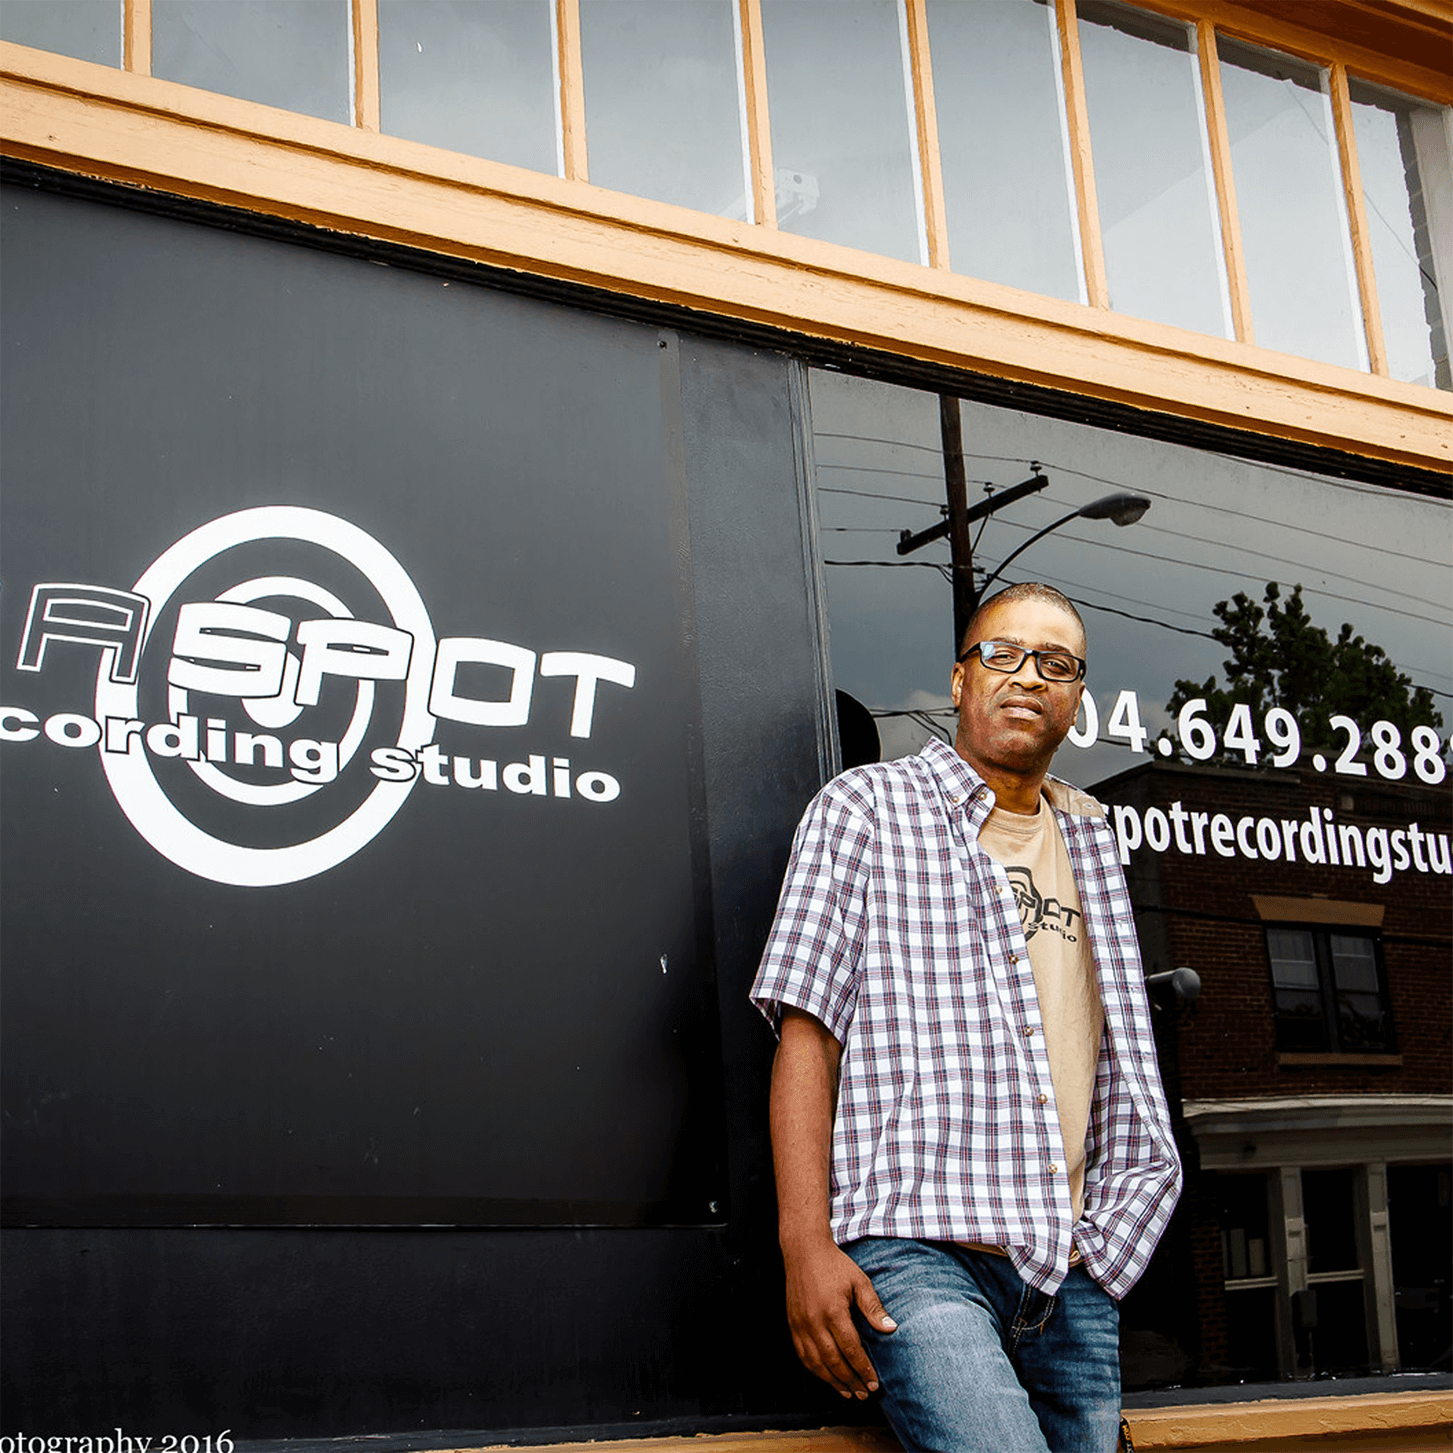 photo of Da Spot Recording Studio and co-founder Kelly Jones